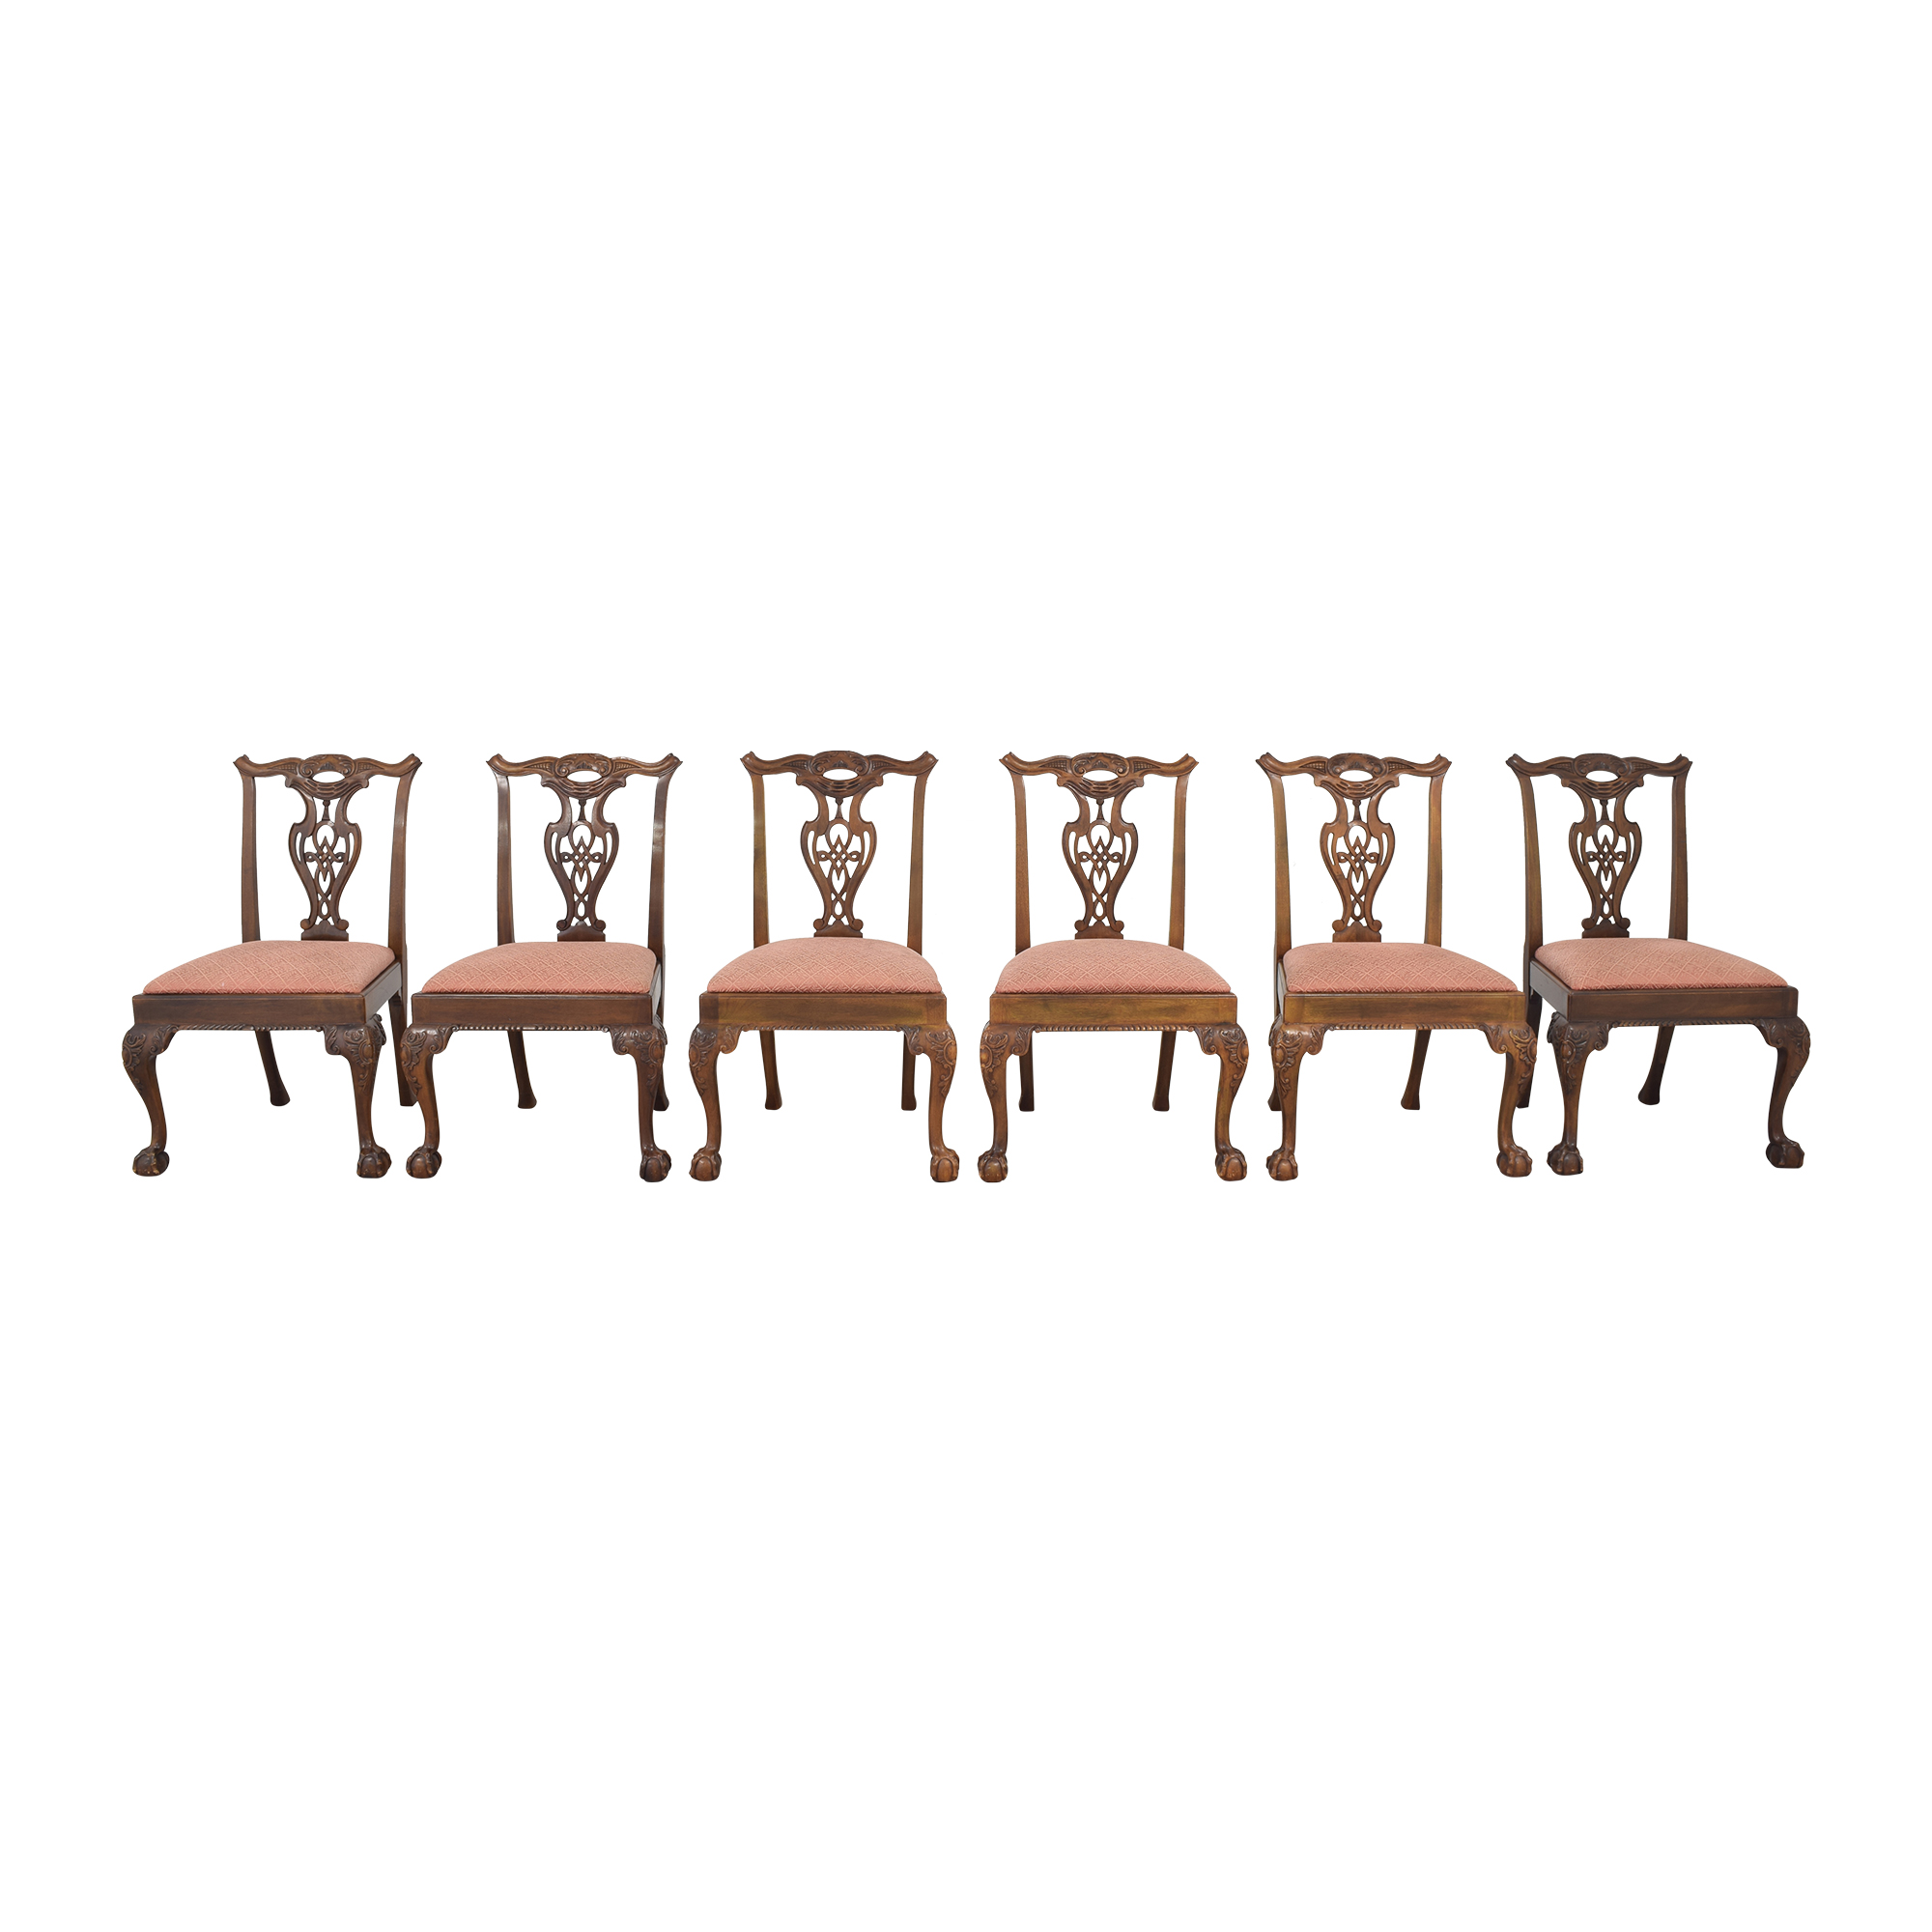 buy Henredon Heirloom Dining Chairs Henredon Furniture Chairs